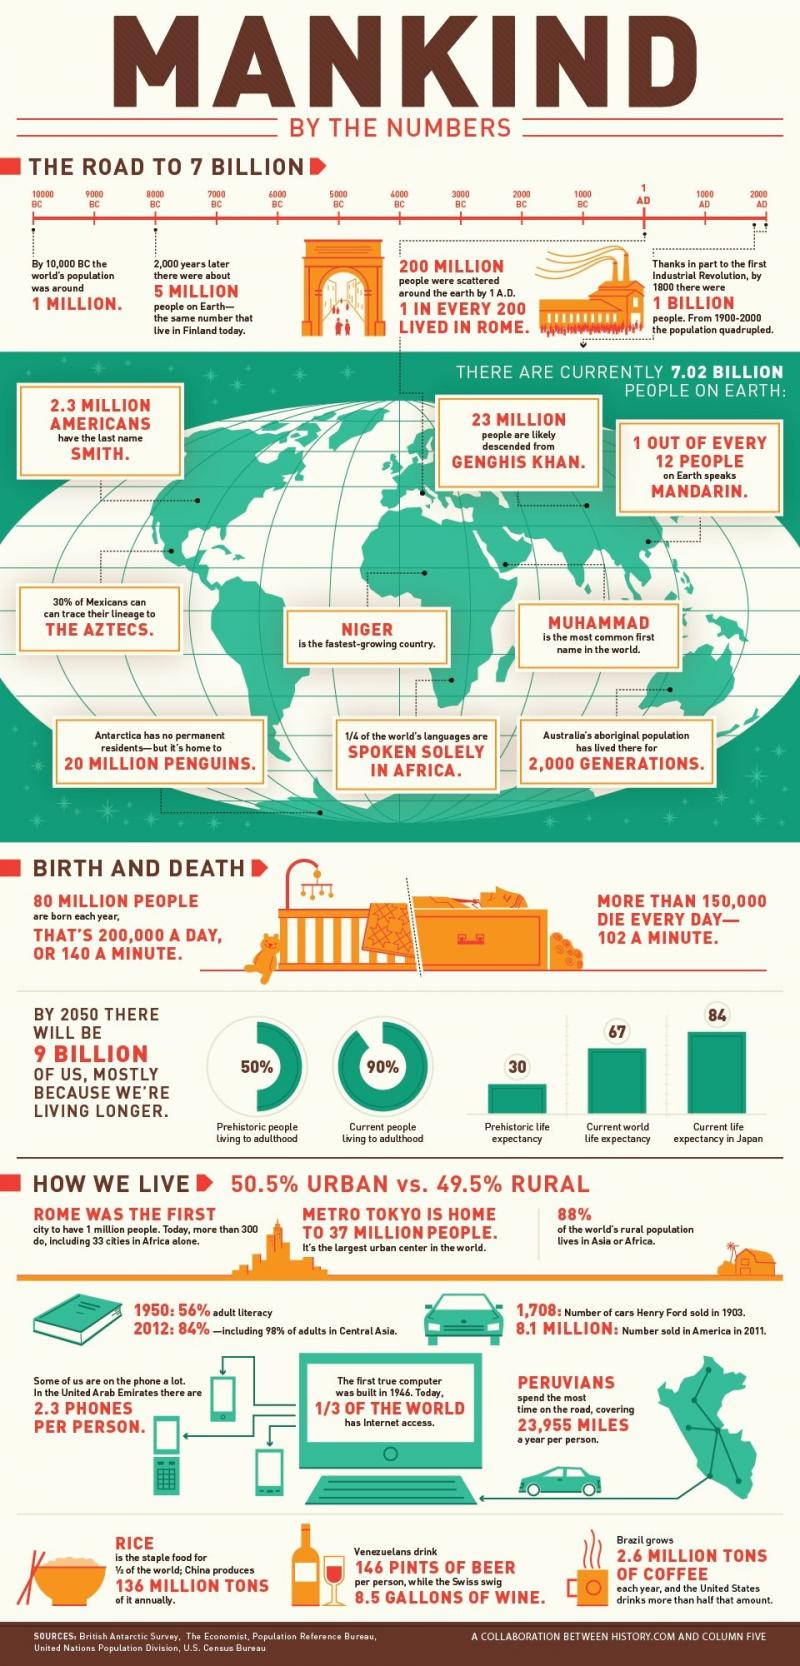 Mankind by numbers #Infographic